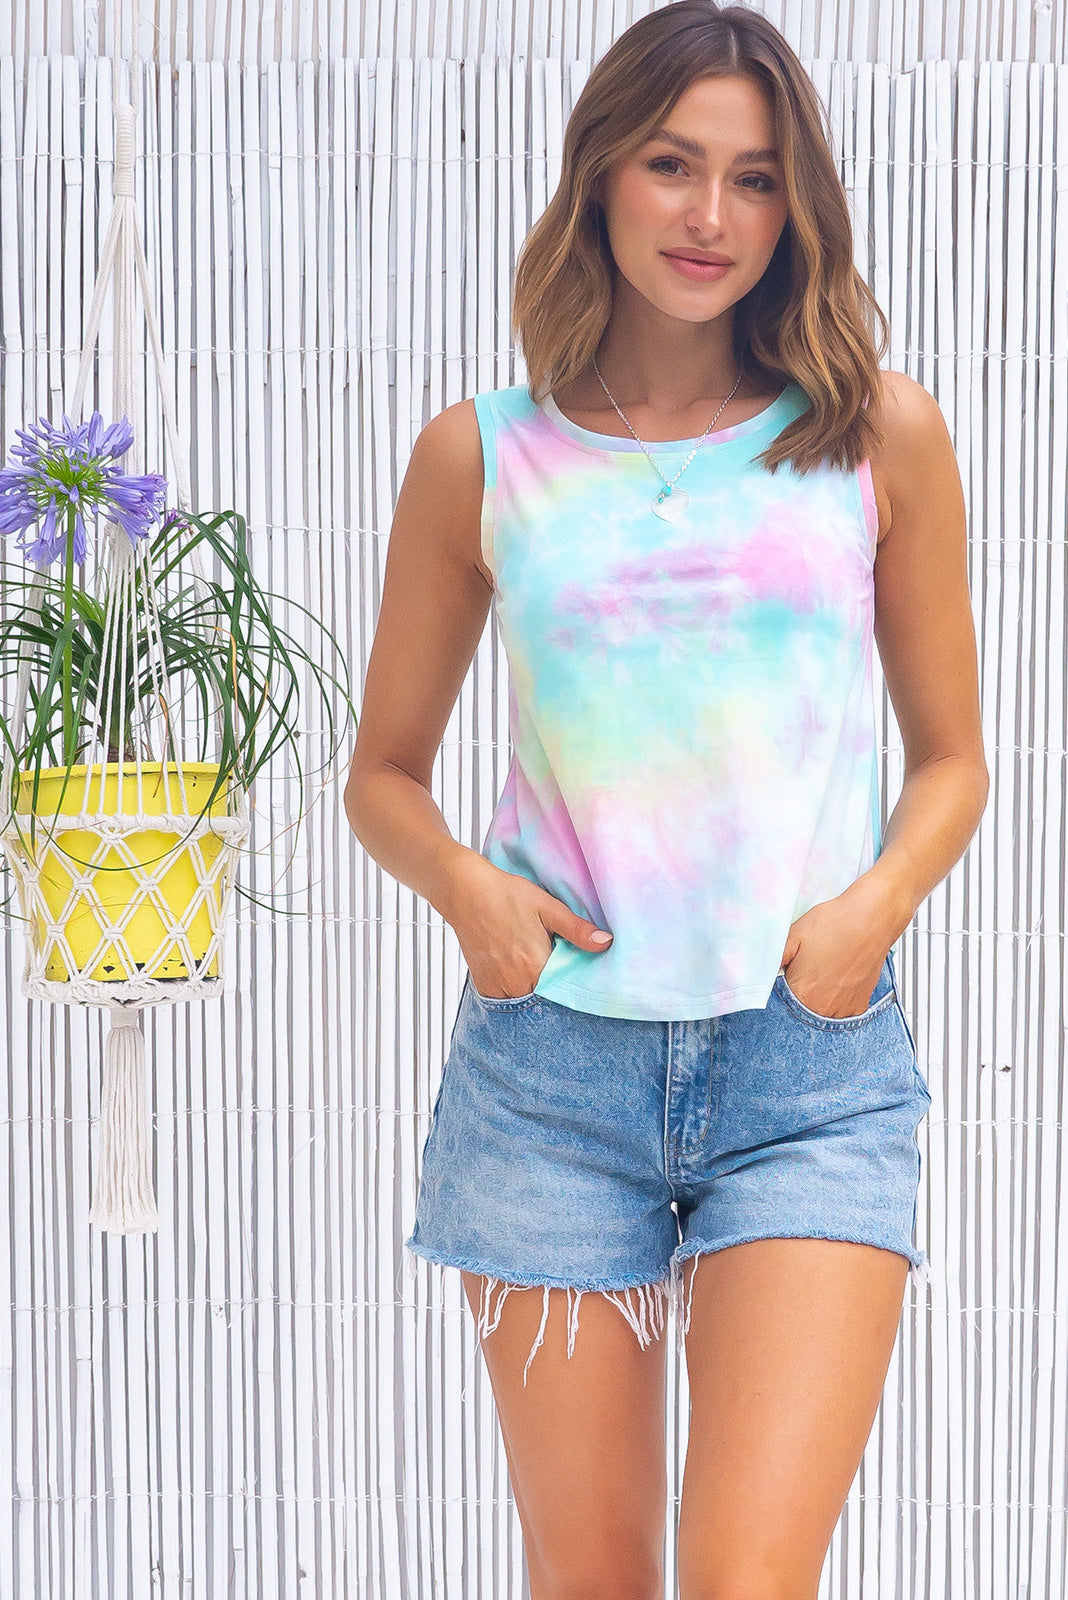 The Tali Top now comes in tie dye,  Tali Rainbow Tie Dye Tank Top is a classic tank top cut featuring slim fit over the bust, relaxed over the waist & hips and polyester blend in  pretty pale tie dye in many colours on a white base.